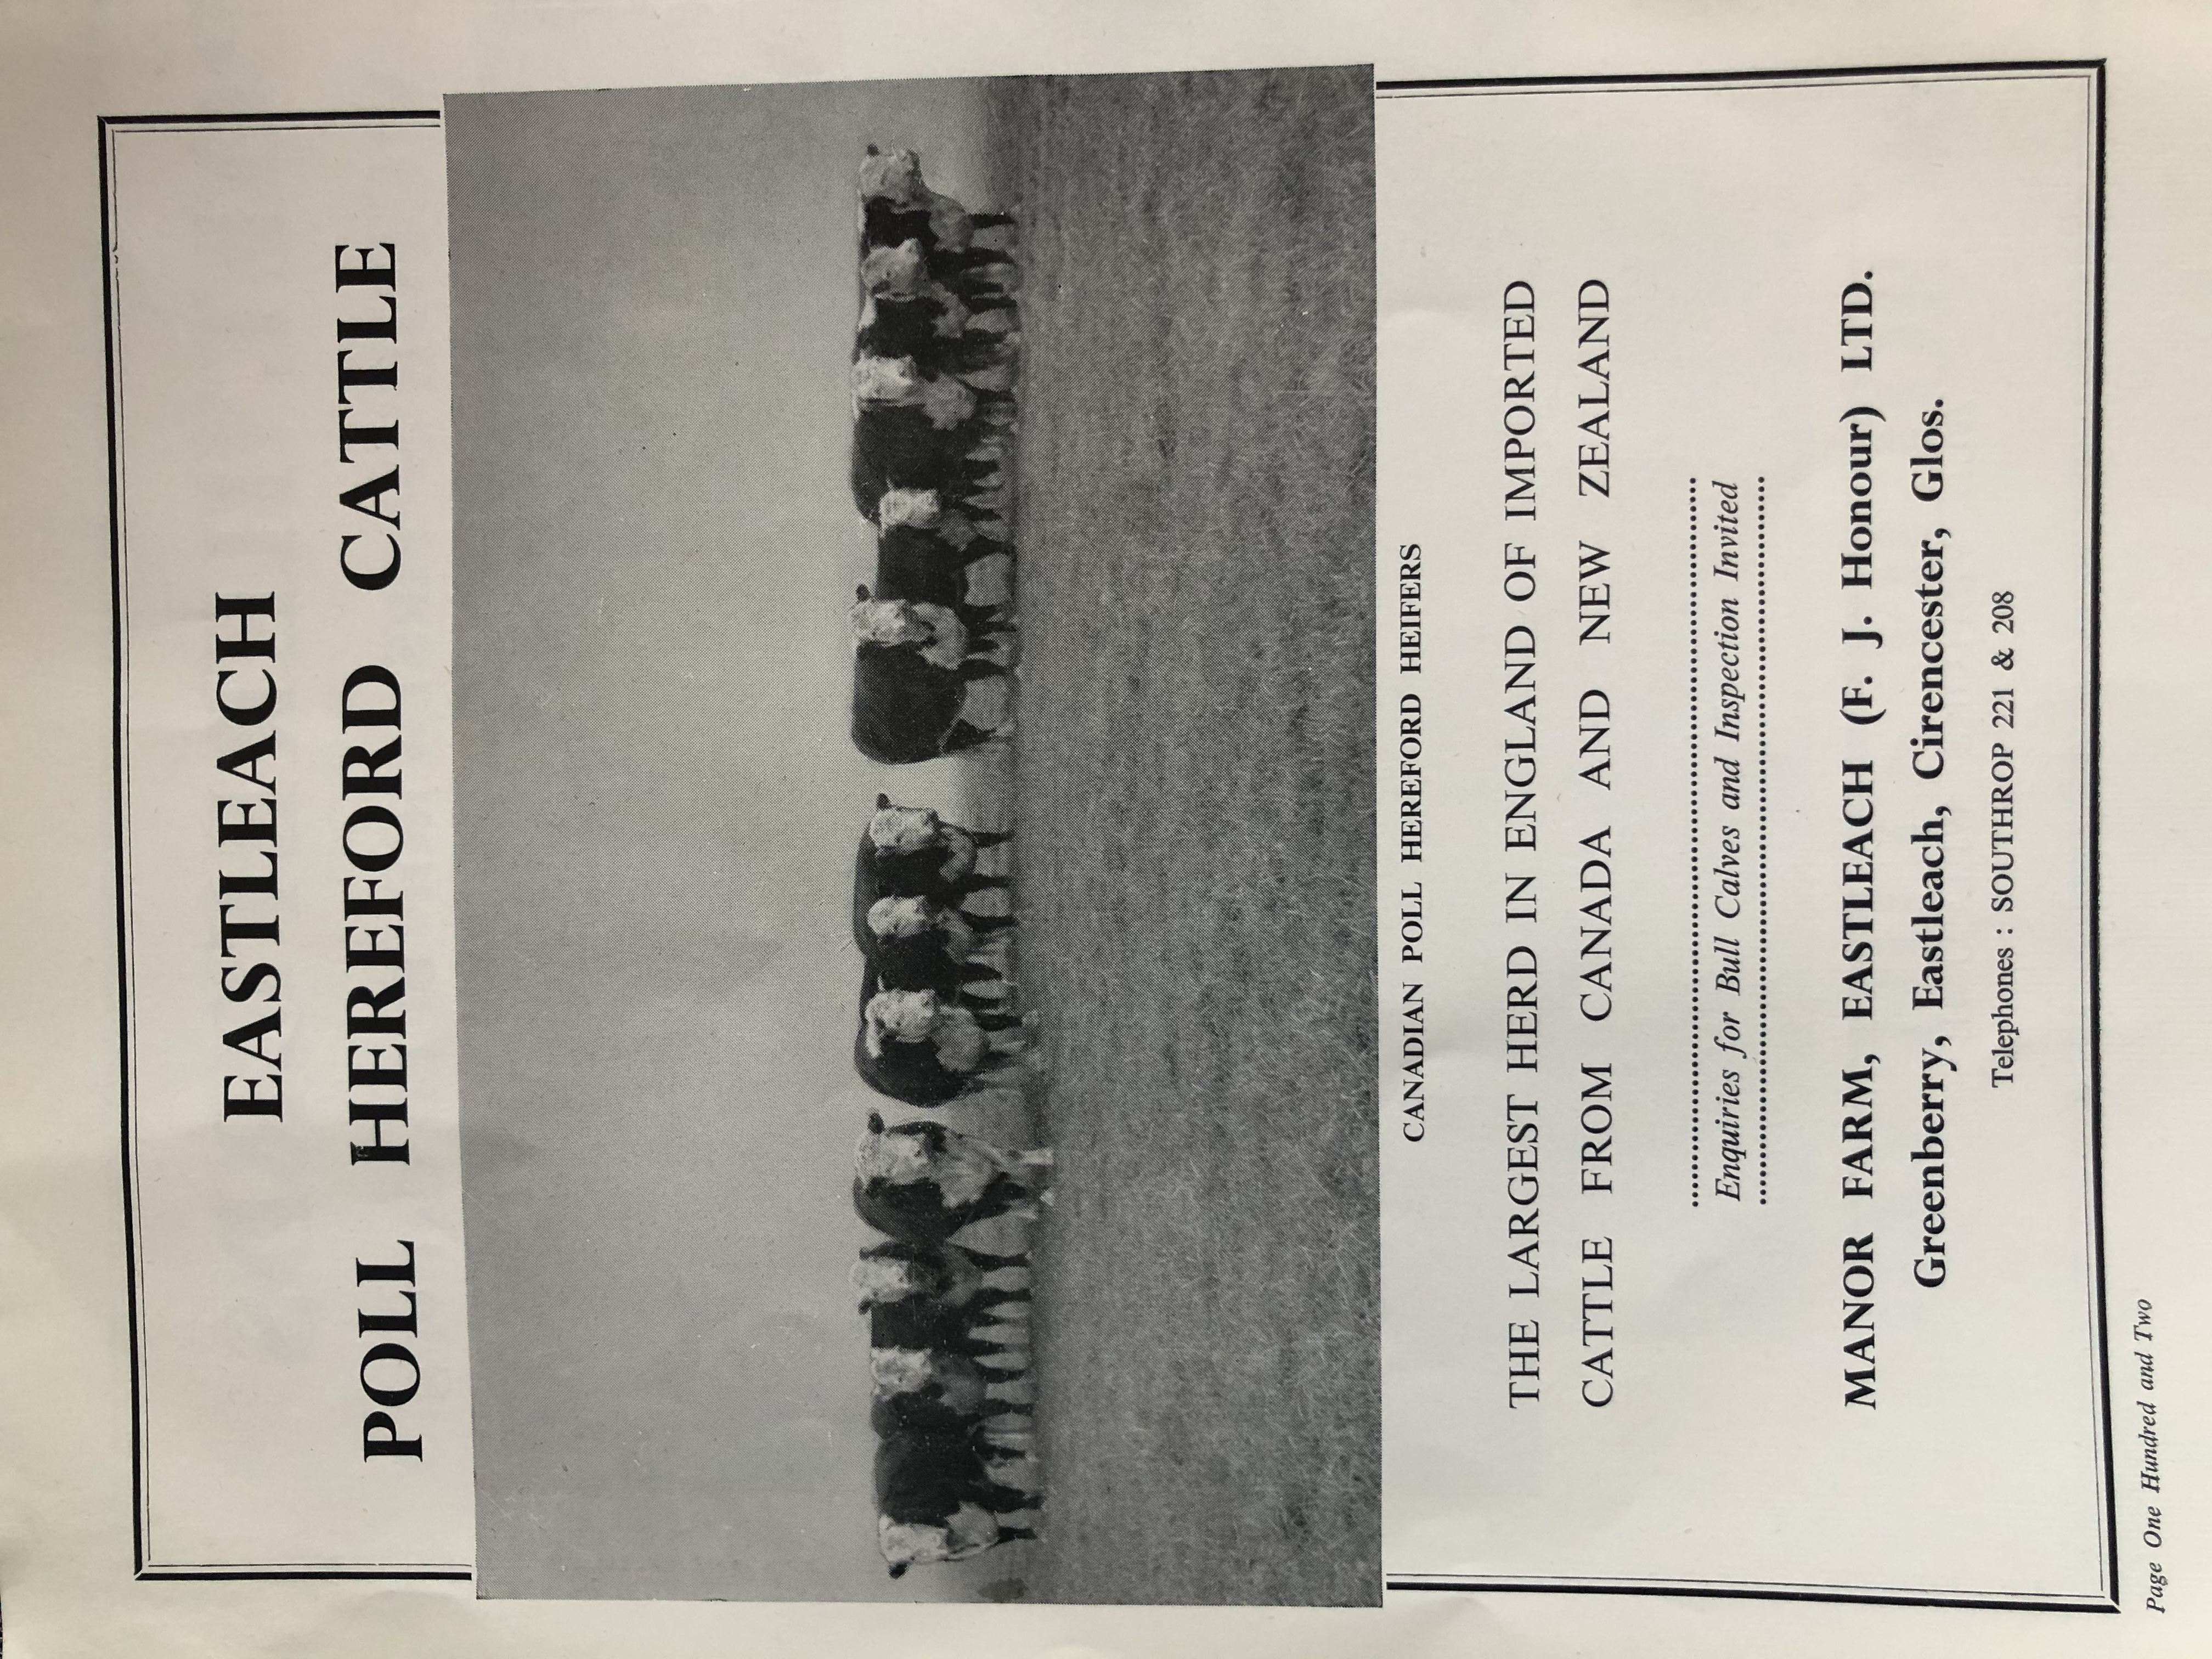 """Found this advert from 1958 for """"The largest herd in England of imported cattle from Canada and New Zealand"""" to be found in Eastleach."""